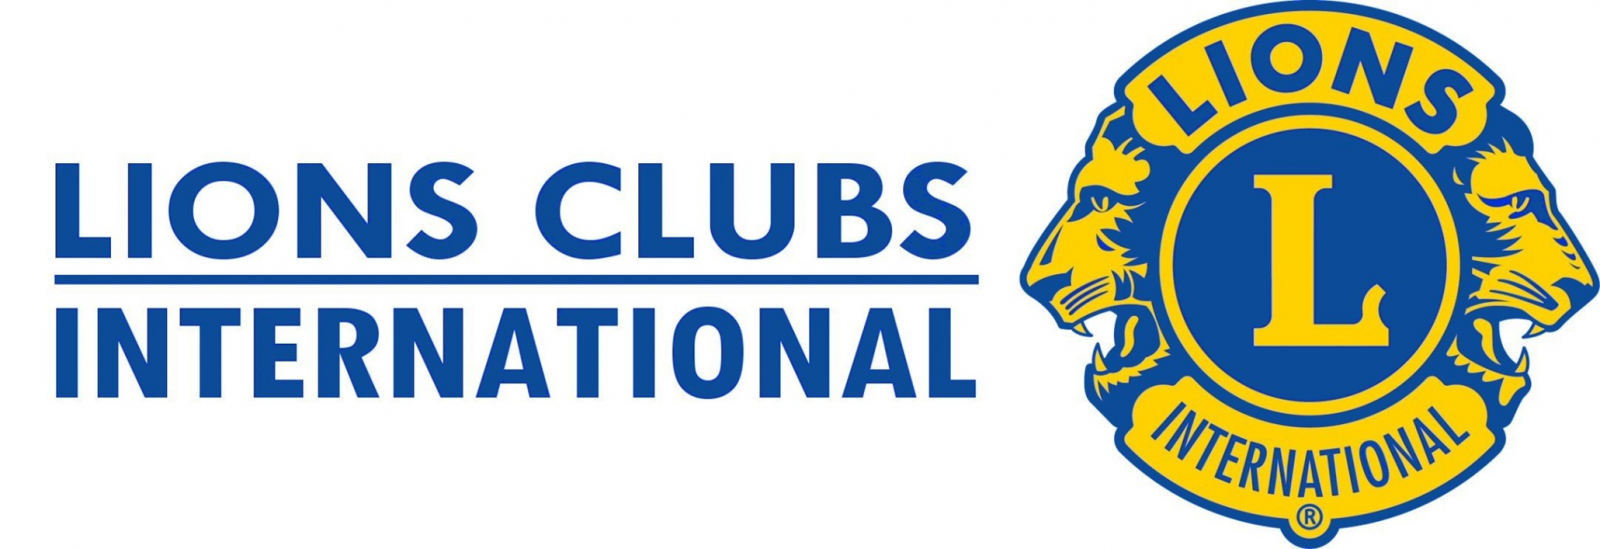 Lions Clubs International coming to Trussville area